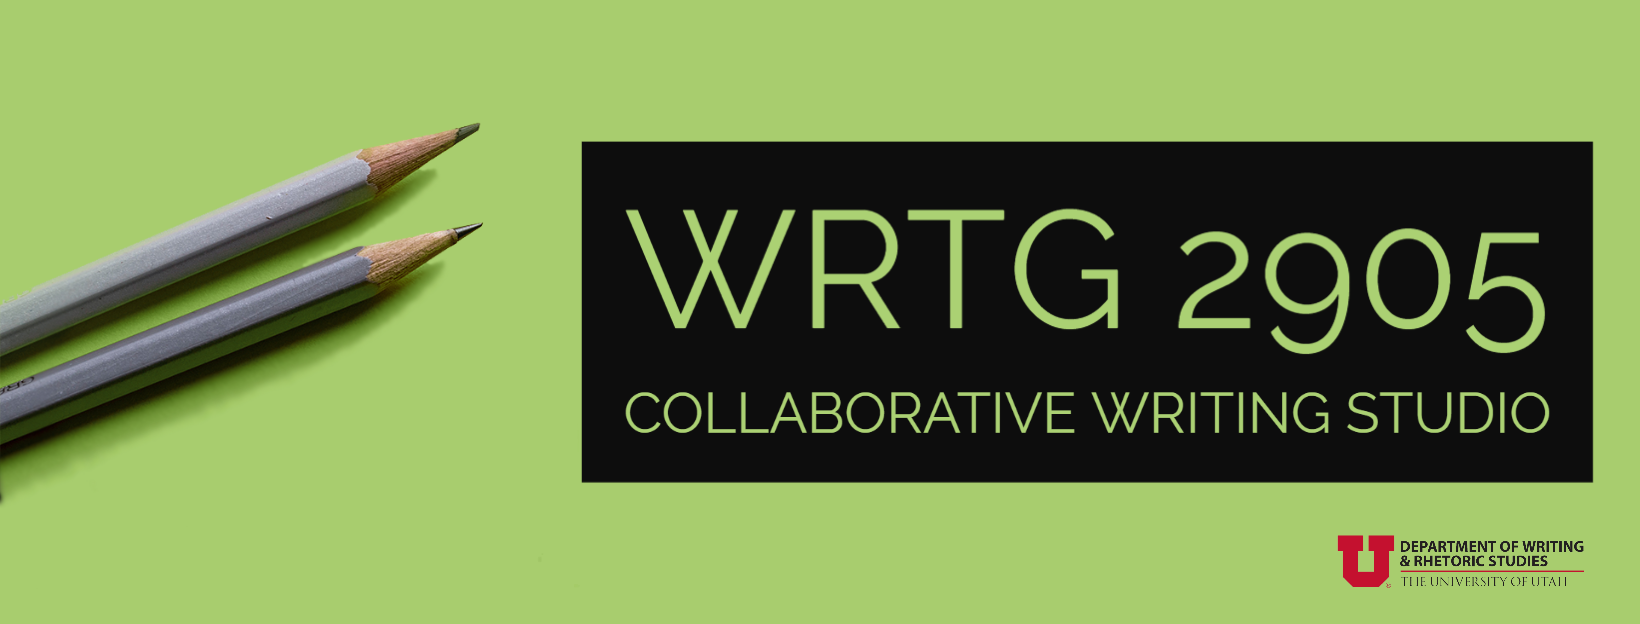 WRTG 2905: Collaborative Writing Studio